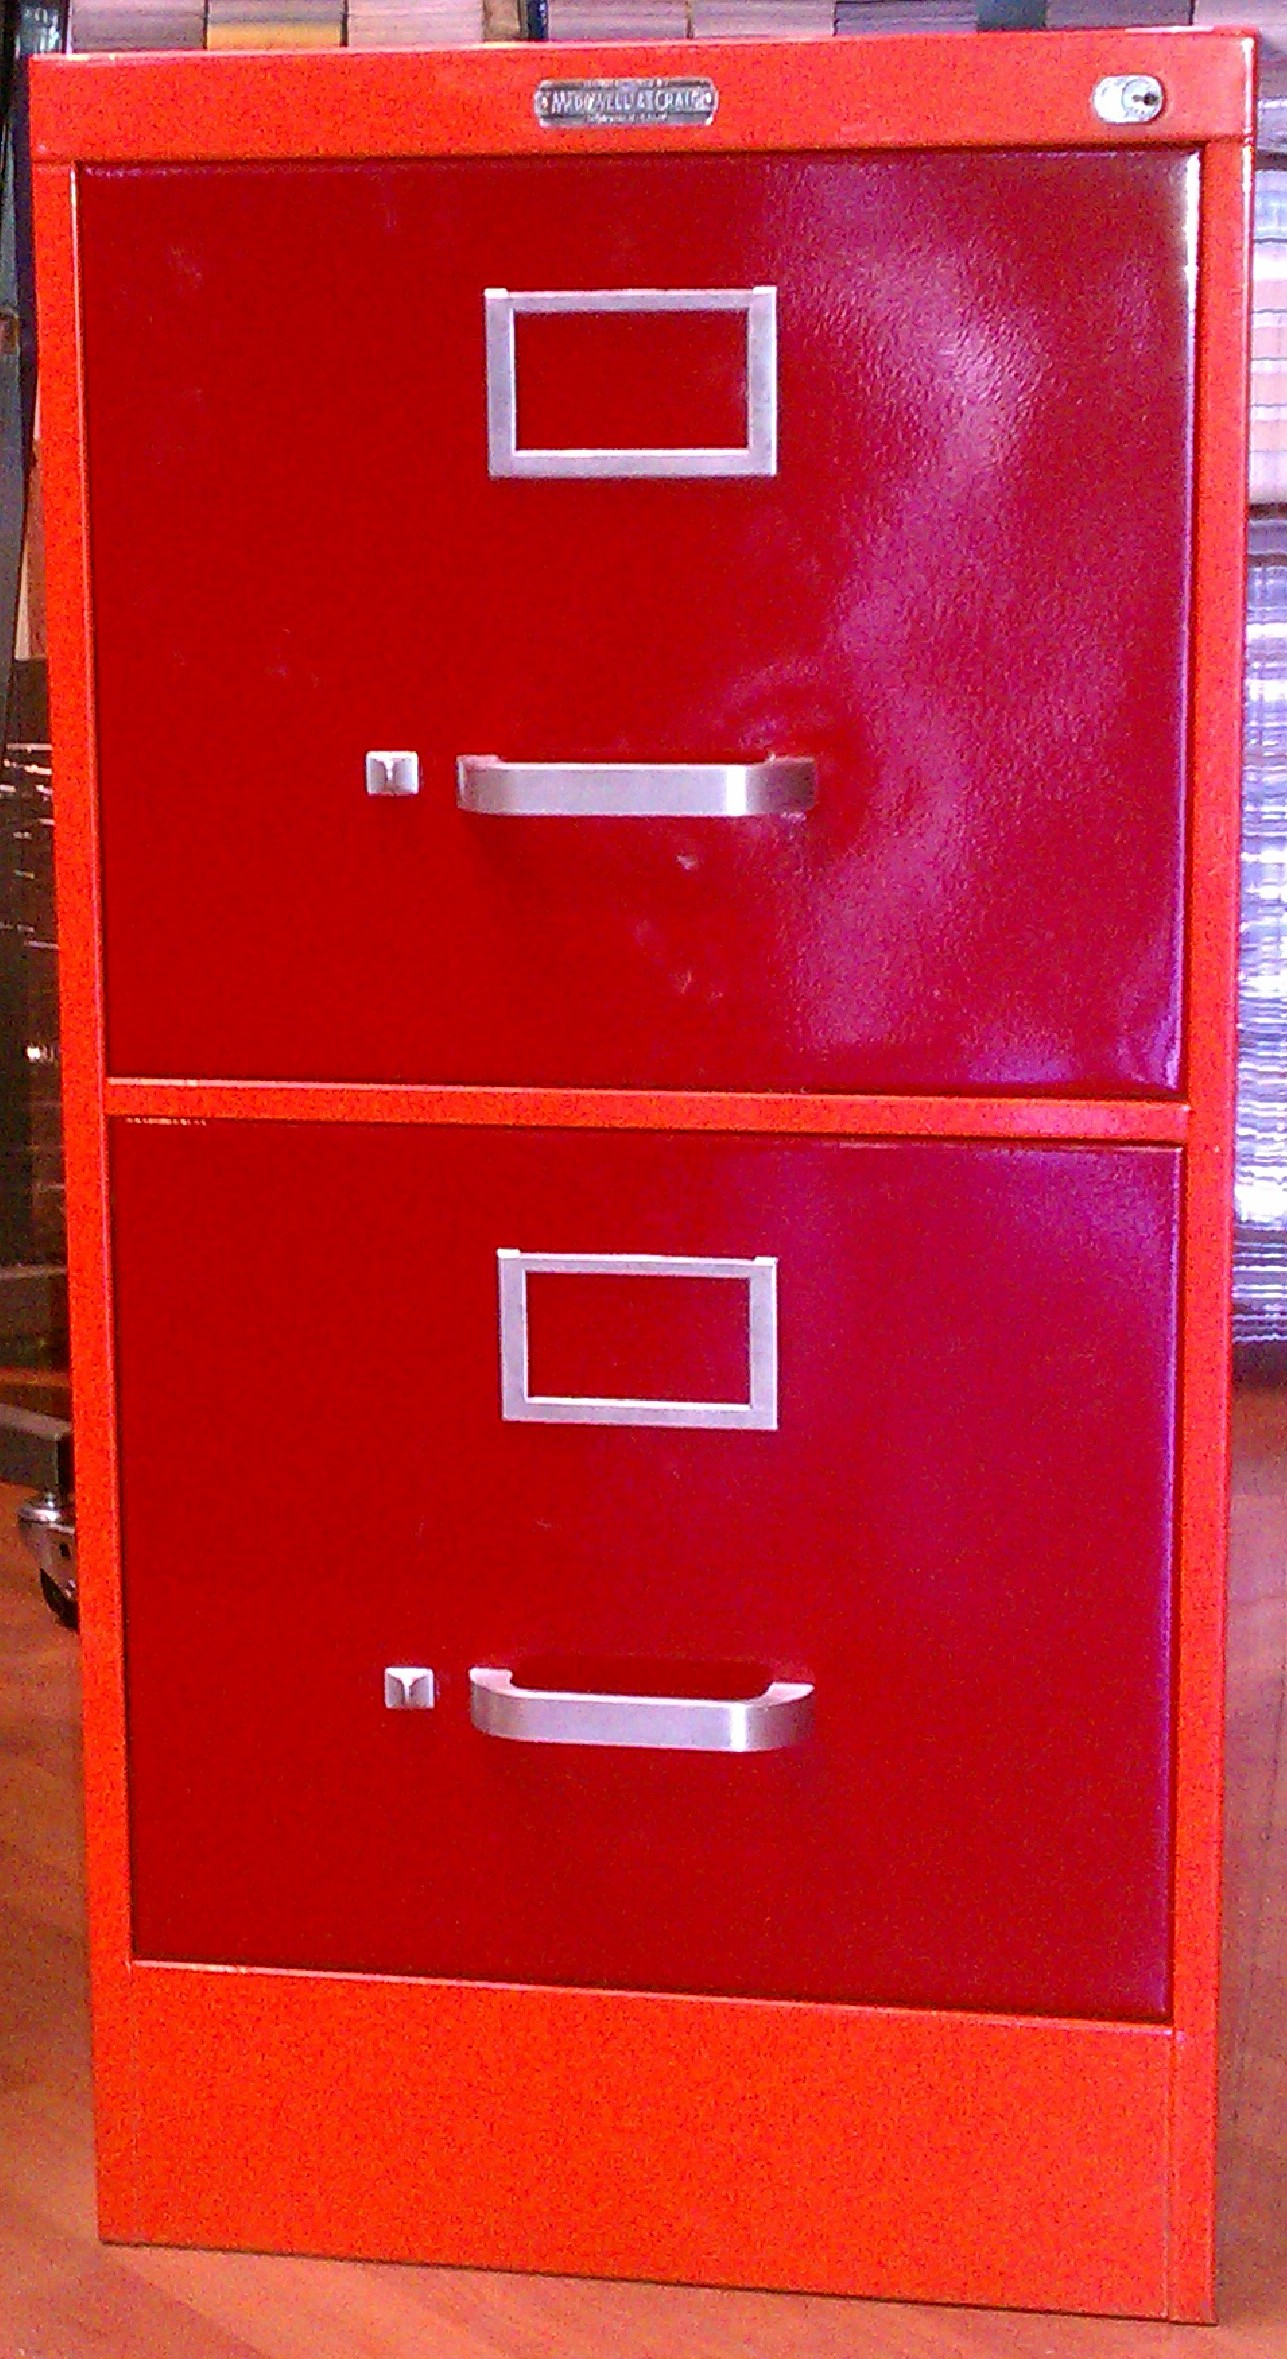 Legal size file cabinets